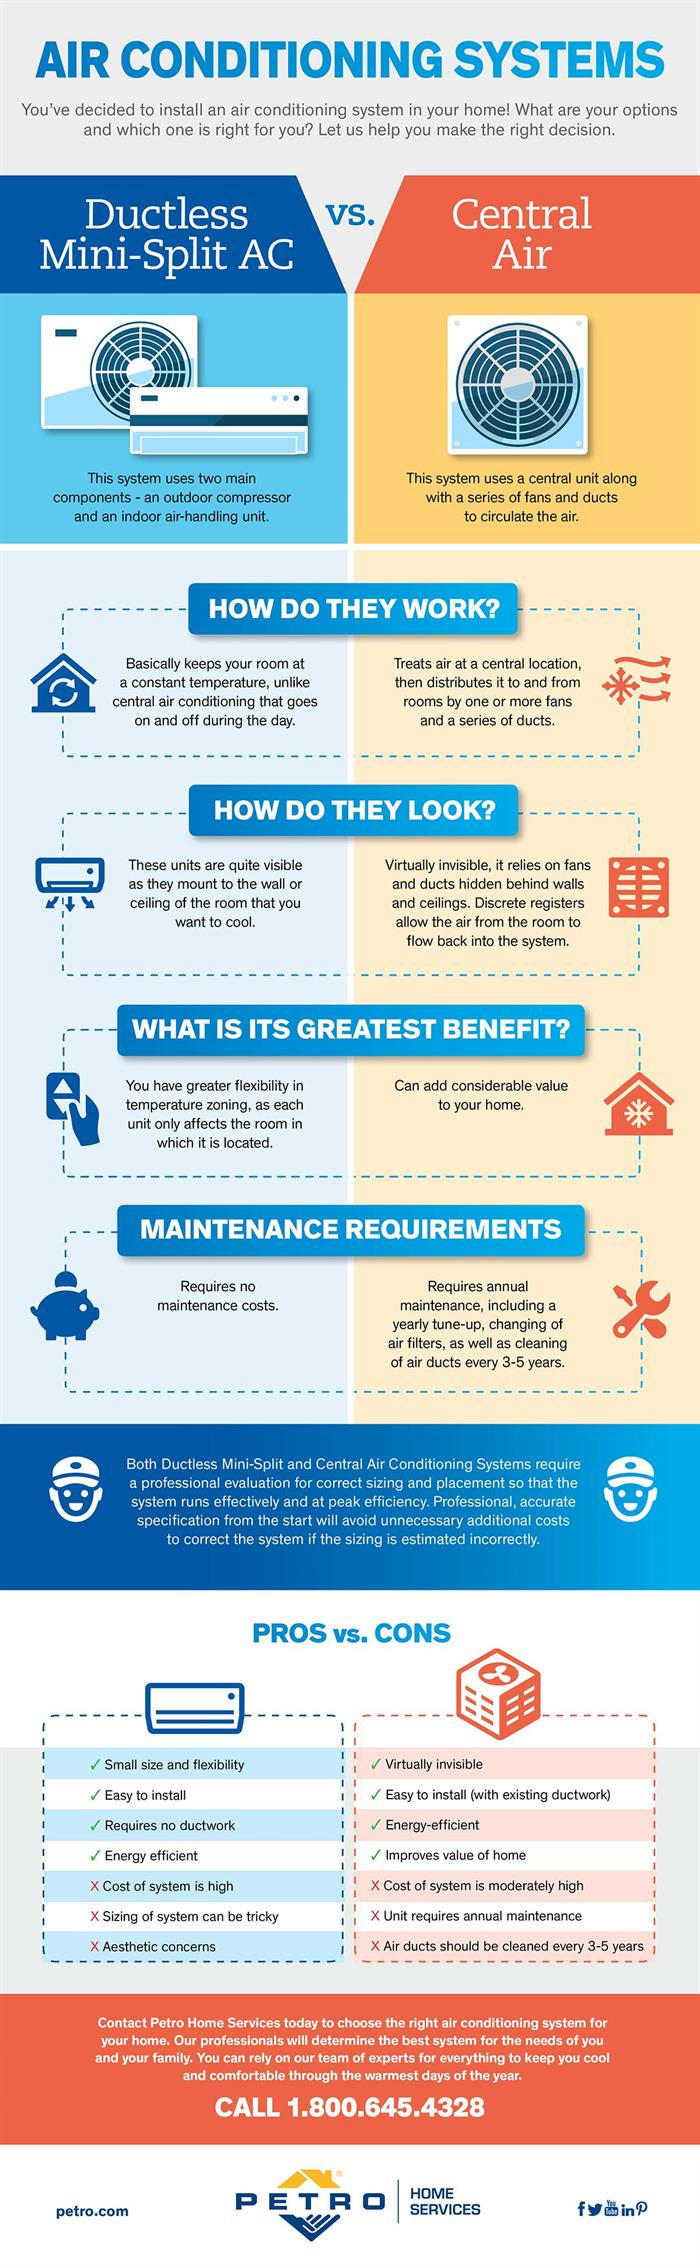 ductless vs central ac infographic from Petro Home Services